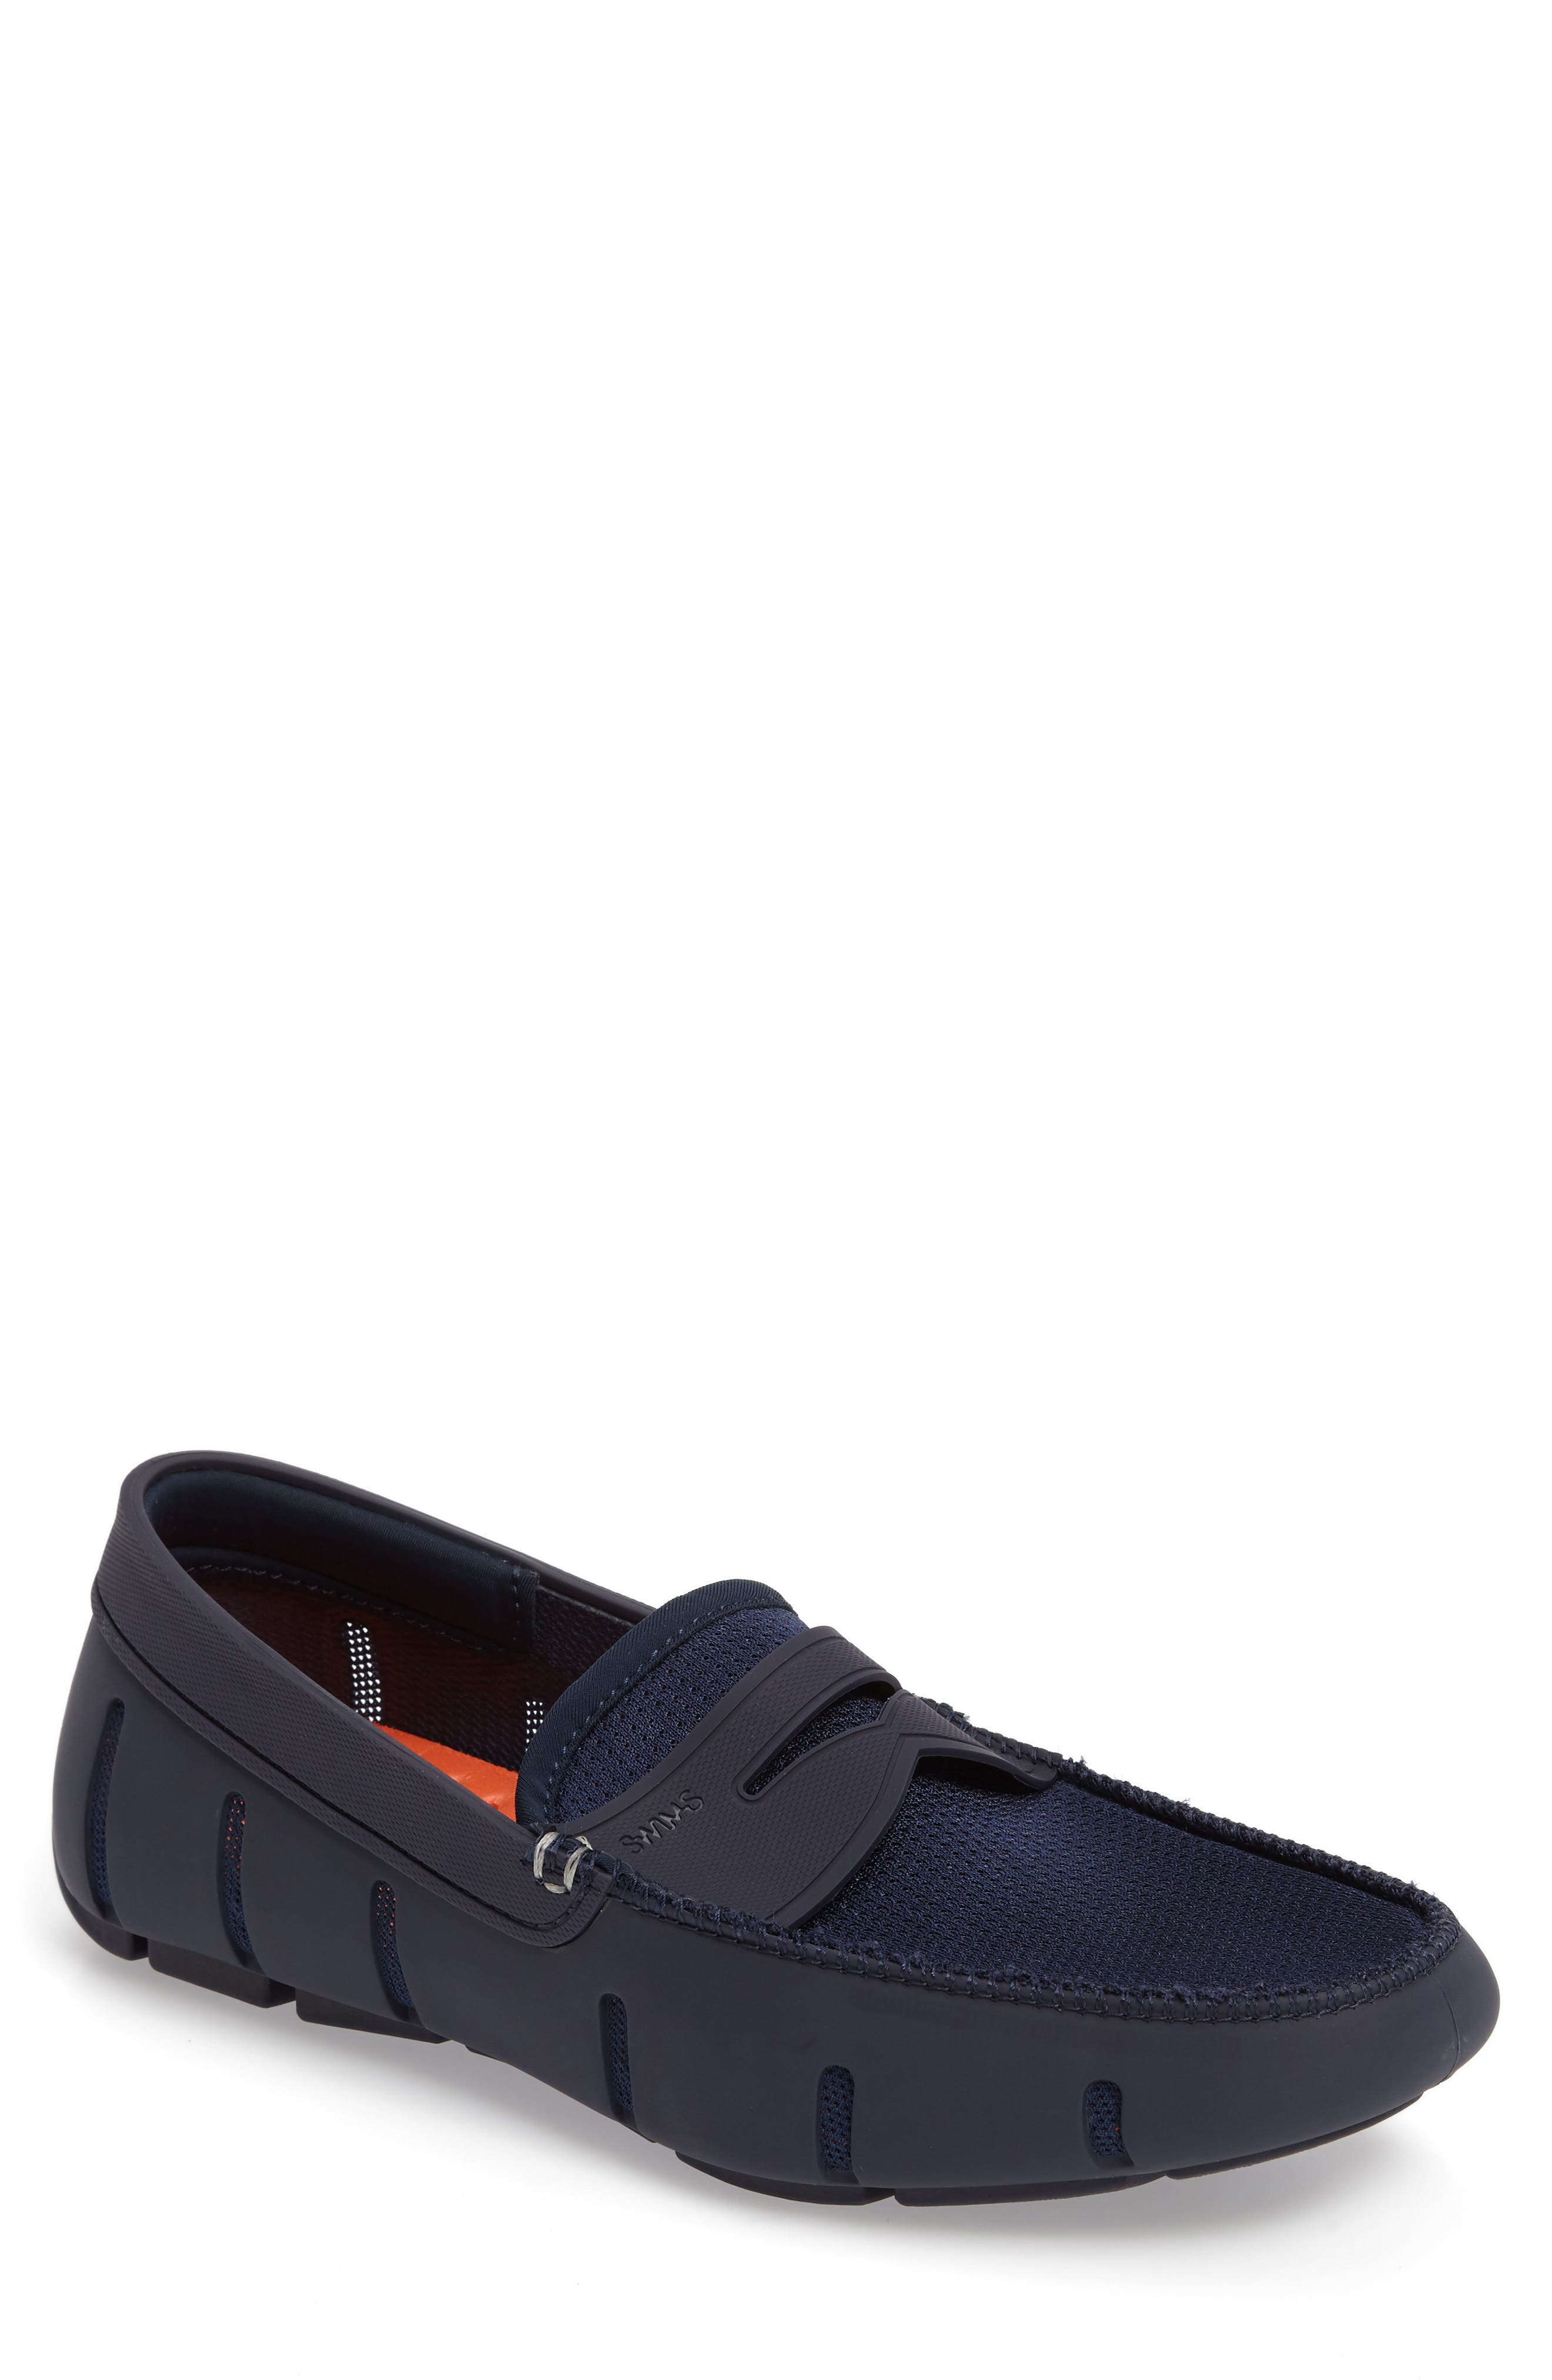 Penny Loafer,                             Main thumbnail 1, color,                             NAVY/NAVY